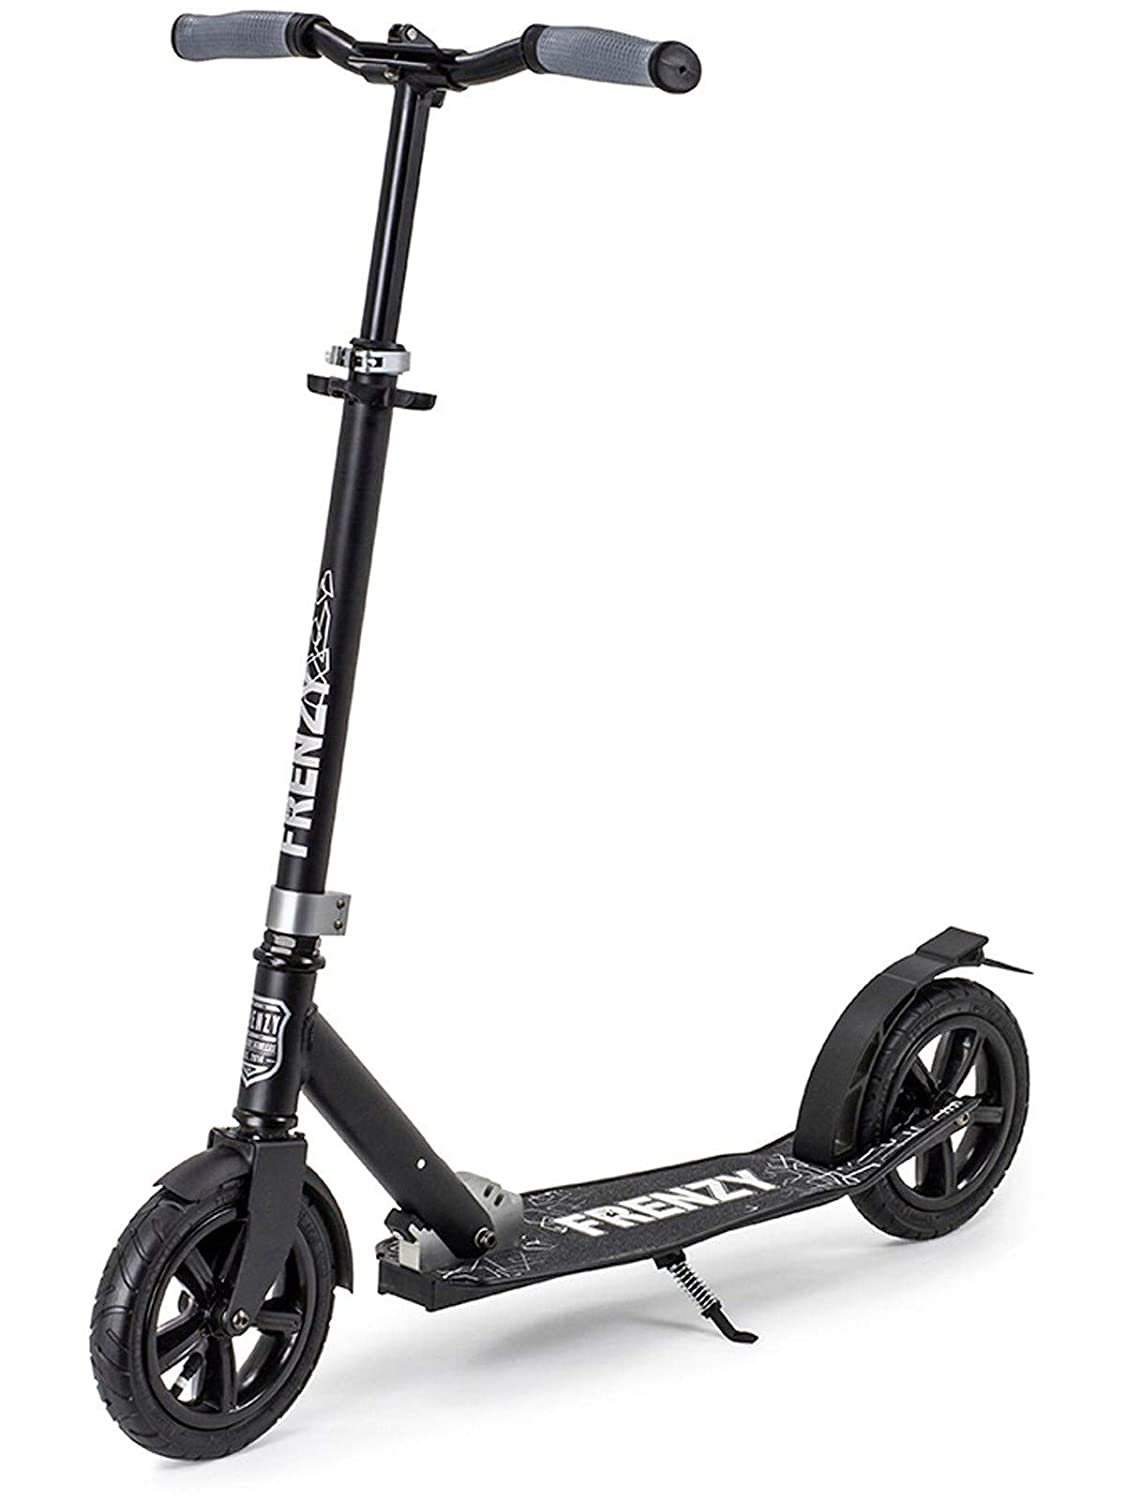 230mm Commuter Scooter Complete Frenzy Black Pneumatic